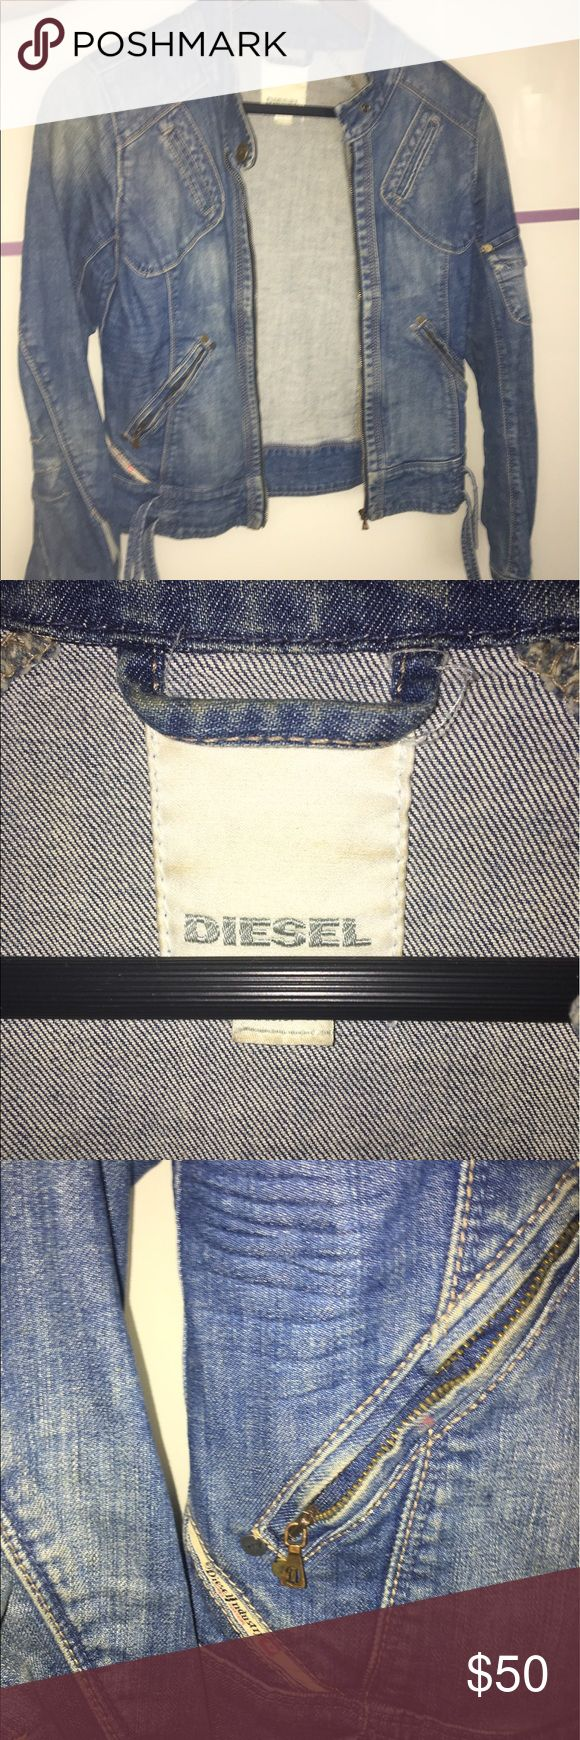 Diesel denim jacket Denim jacket Diesel Jackets & Coats